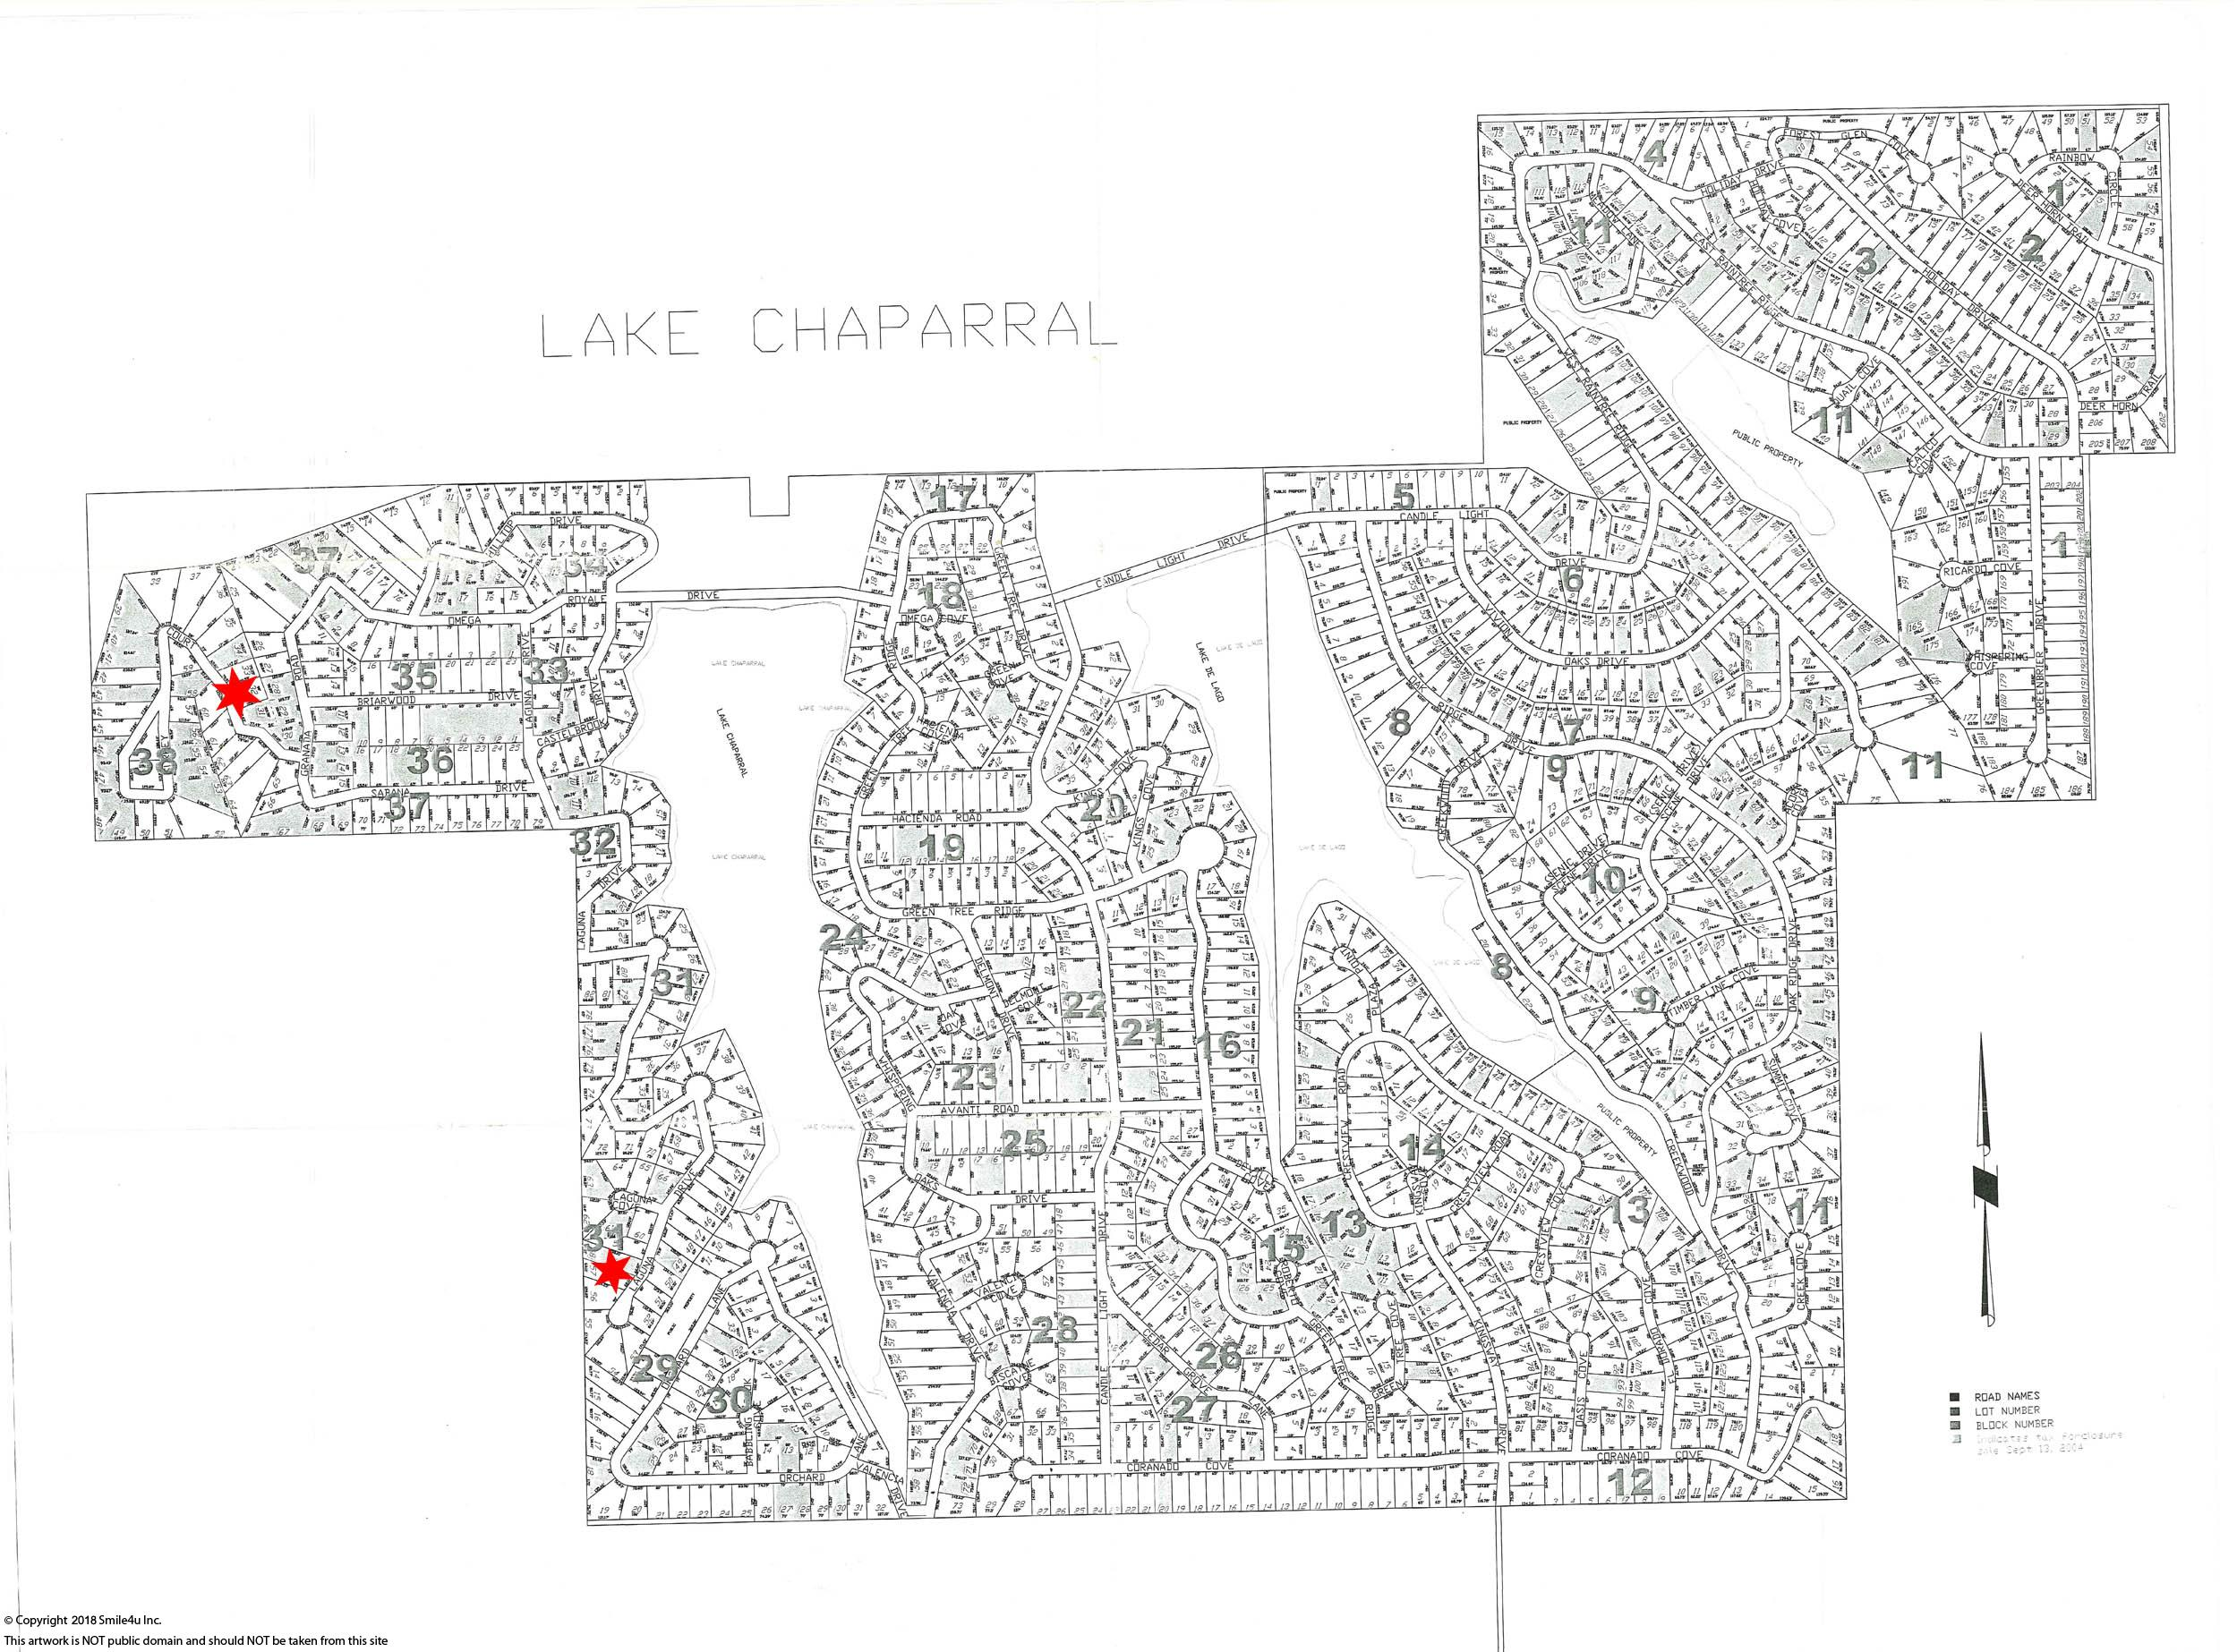 557881_watermarked_lake chaparral full subdivision map.jpg